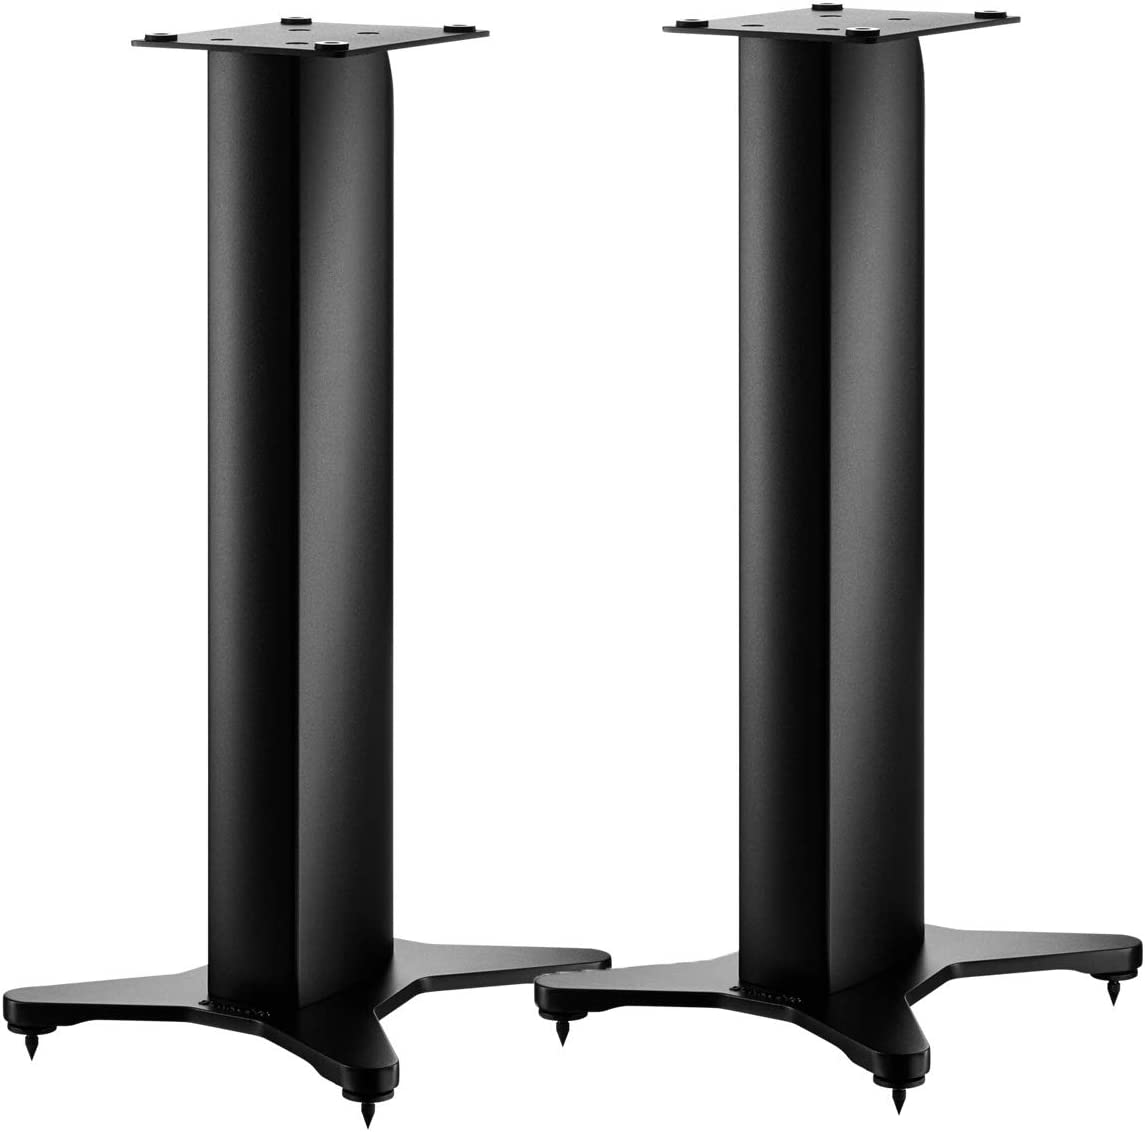 DYNAUDIO Stand 10 Speaker Stands for Bookshelf Speakers – Pair Satin Black